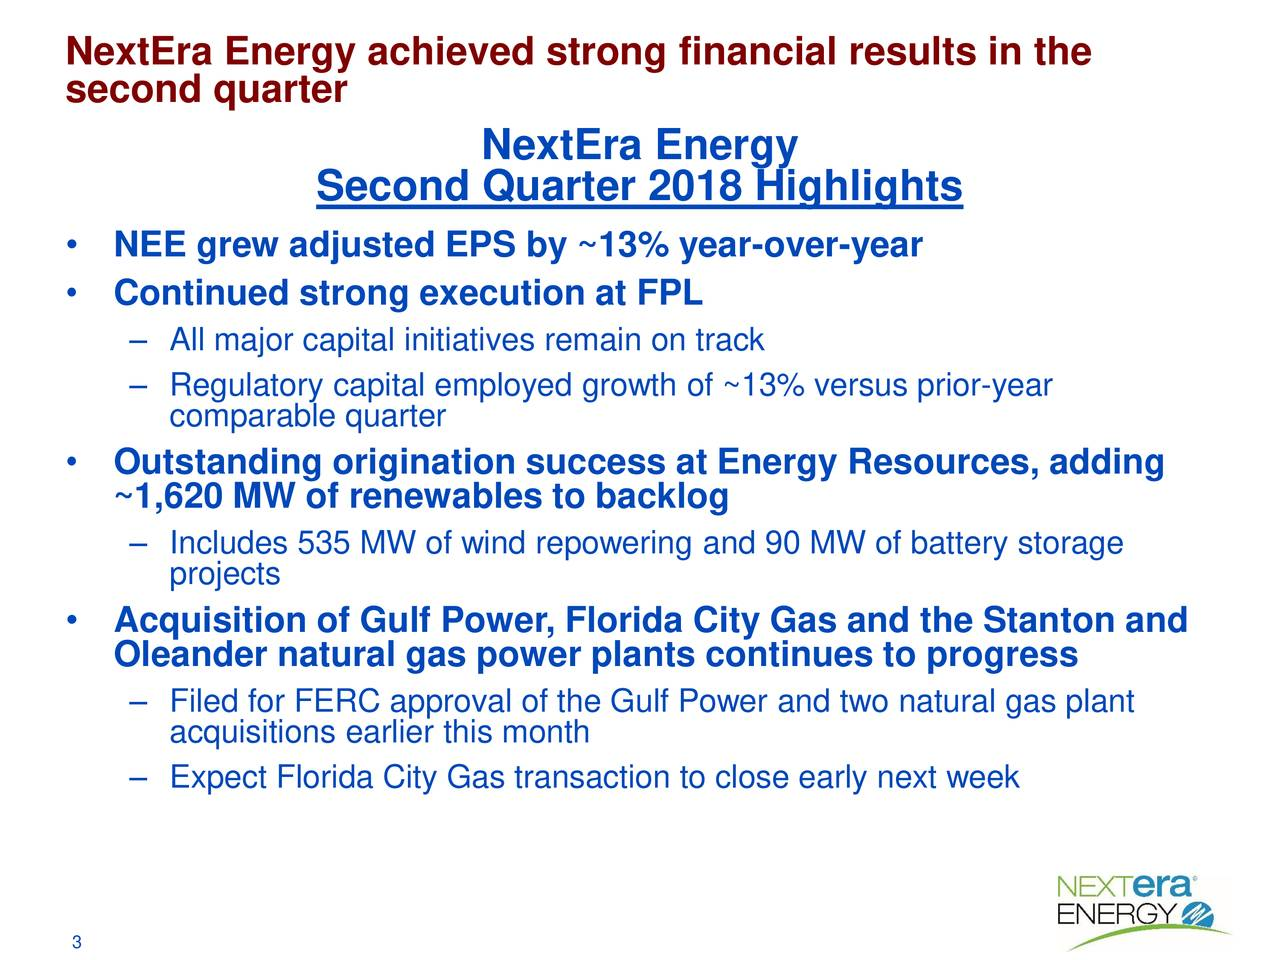 second quarter NextEra Energy Second Quarter 2018 Highlights • NEE grew adjusted EPS by ~13% year-over-year • Continued strong execution at FPL – All major capital initiatives remain on track – Rcomparable quarteremployed growth of ~13% versus prior-year • Outstanding origination success at Energy Resources, adding ~1,620 MW of renewables to backlog – Includes 535 MW of wind repowering and 90 MW of battery storage projects • Acquisition of Gulf Power, Florida City Gas and the Stanton and Oleander natural gas power plants continues to progress – Filed for FERC approval of the Gulf Power and two natural gas plant acquisitions earlier this month – Expect Florida City Gas transaction to close early next week